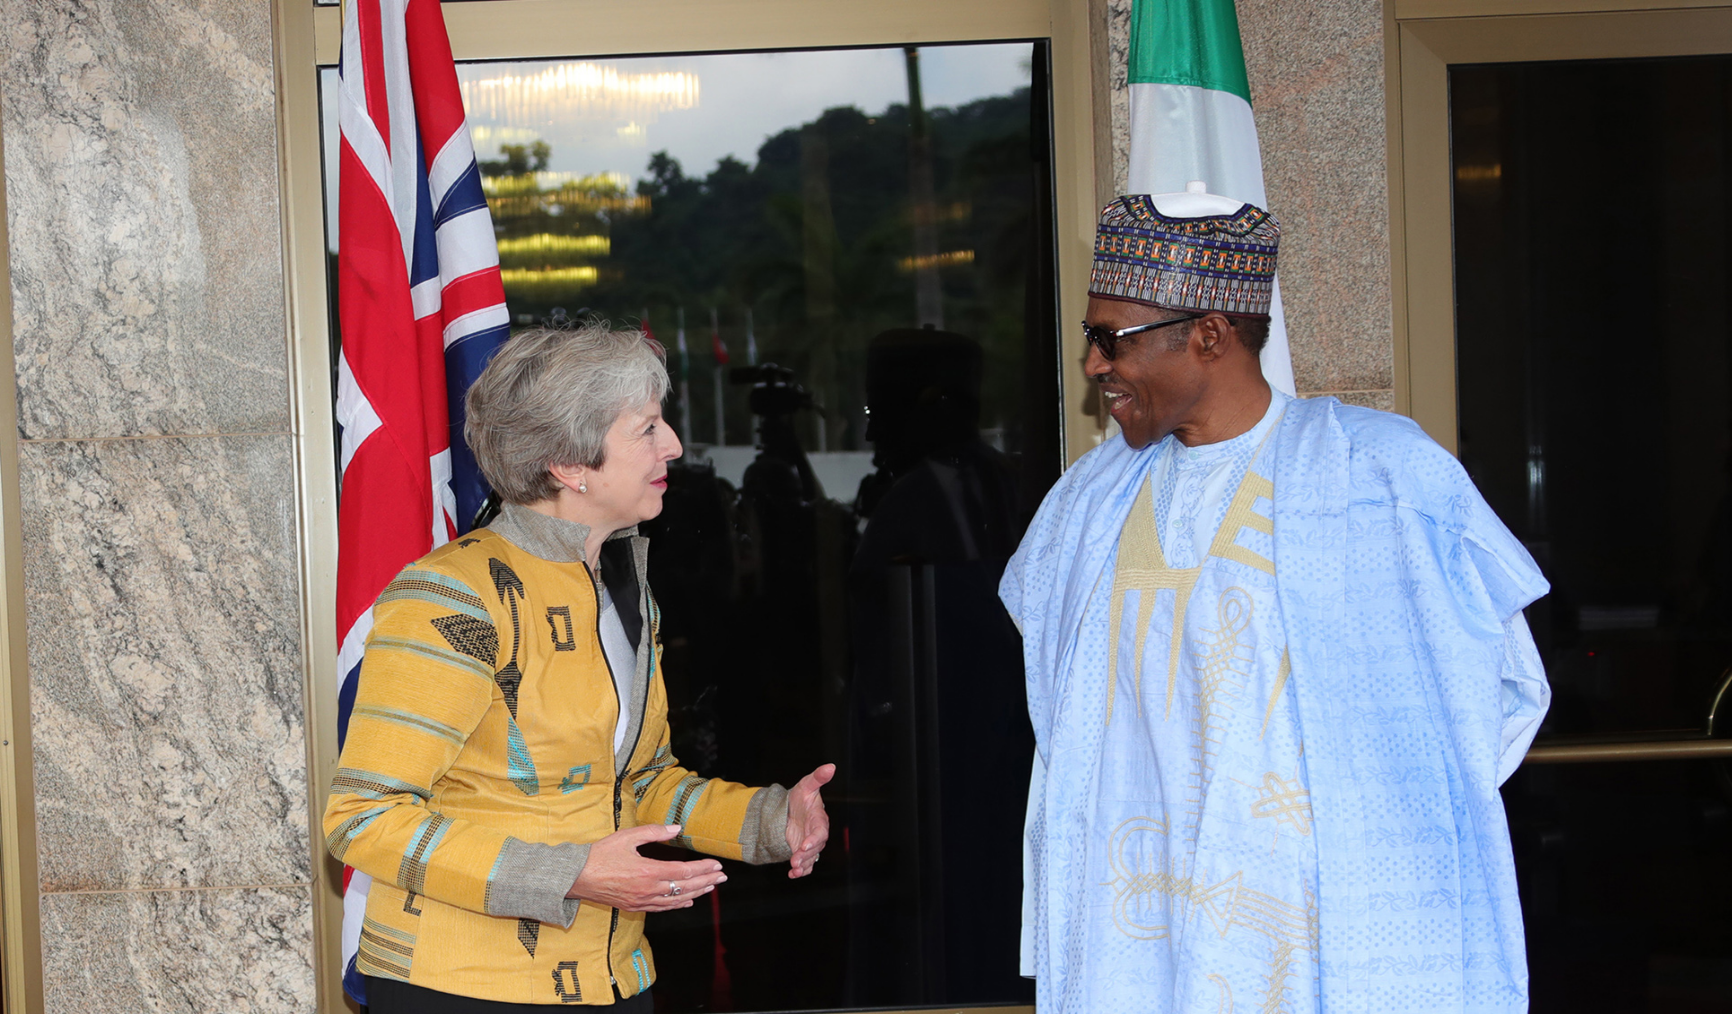 What does Theresa May's visit mean for Nigeria?